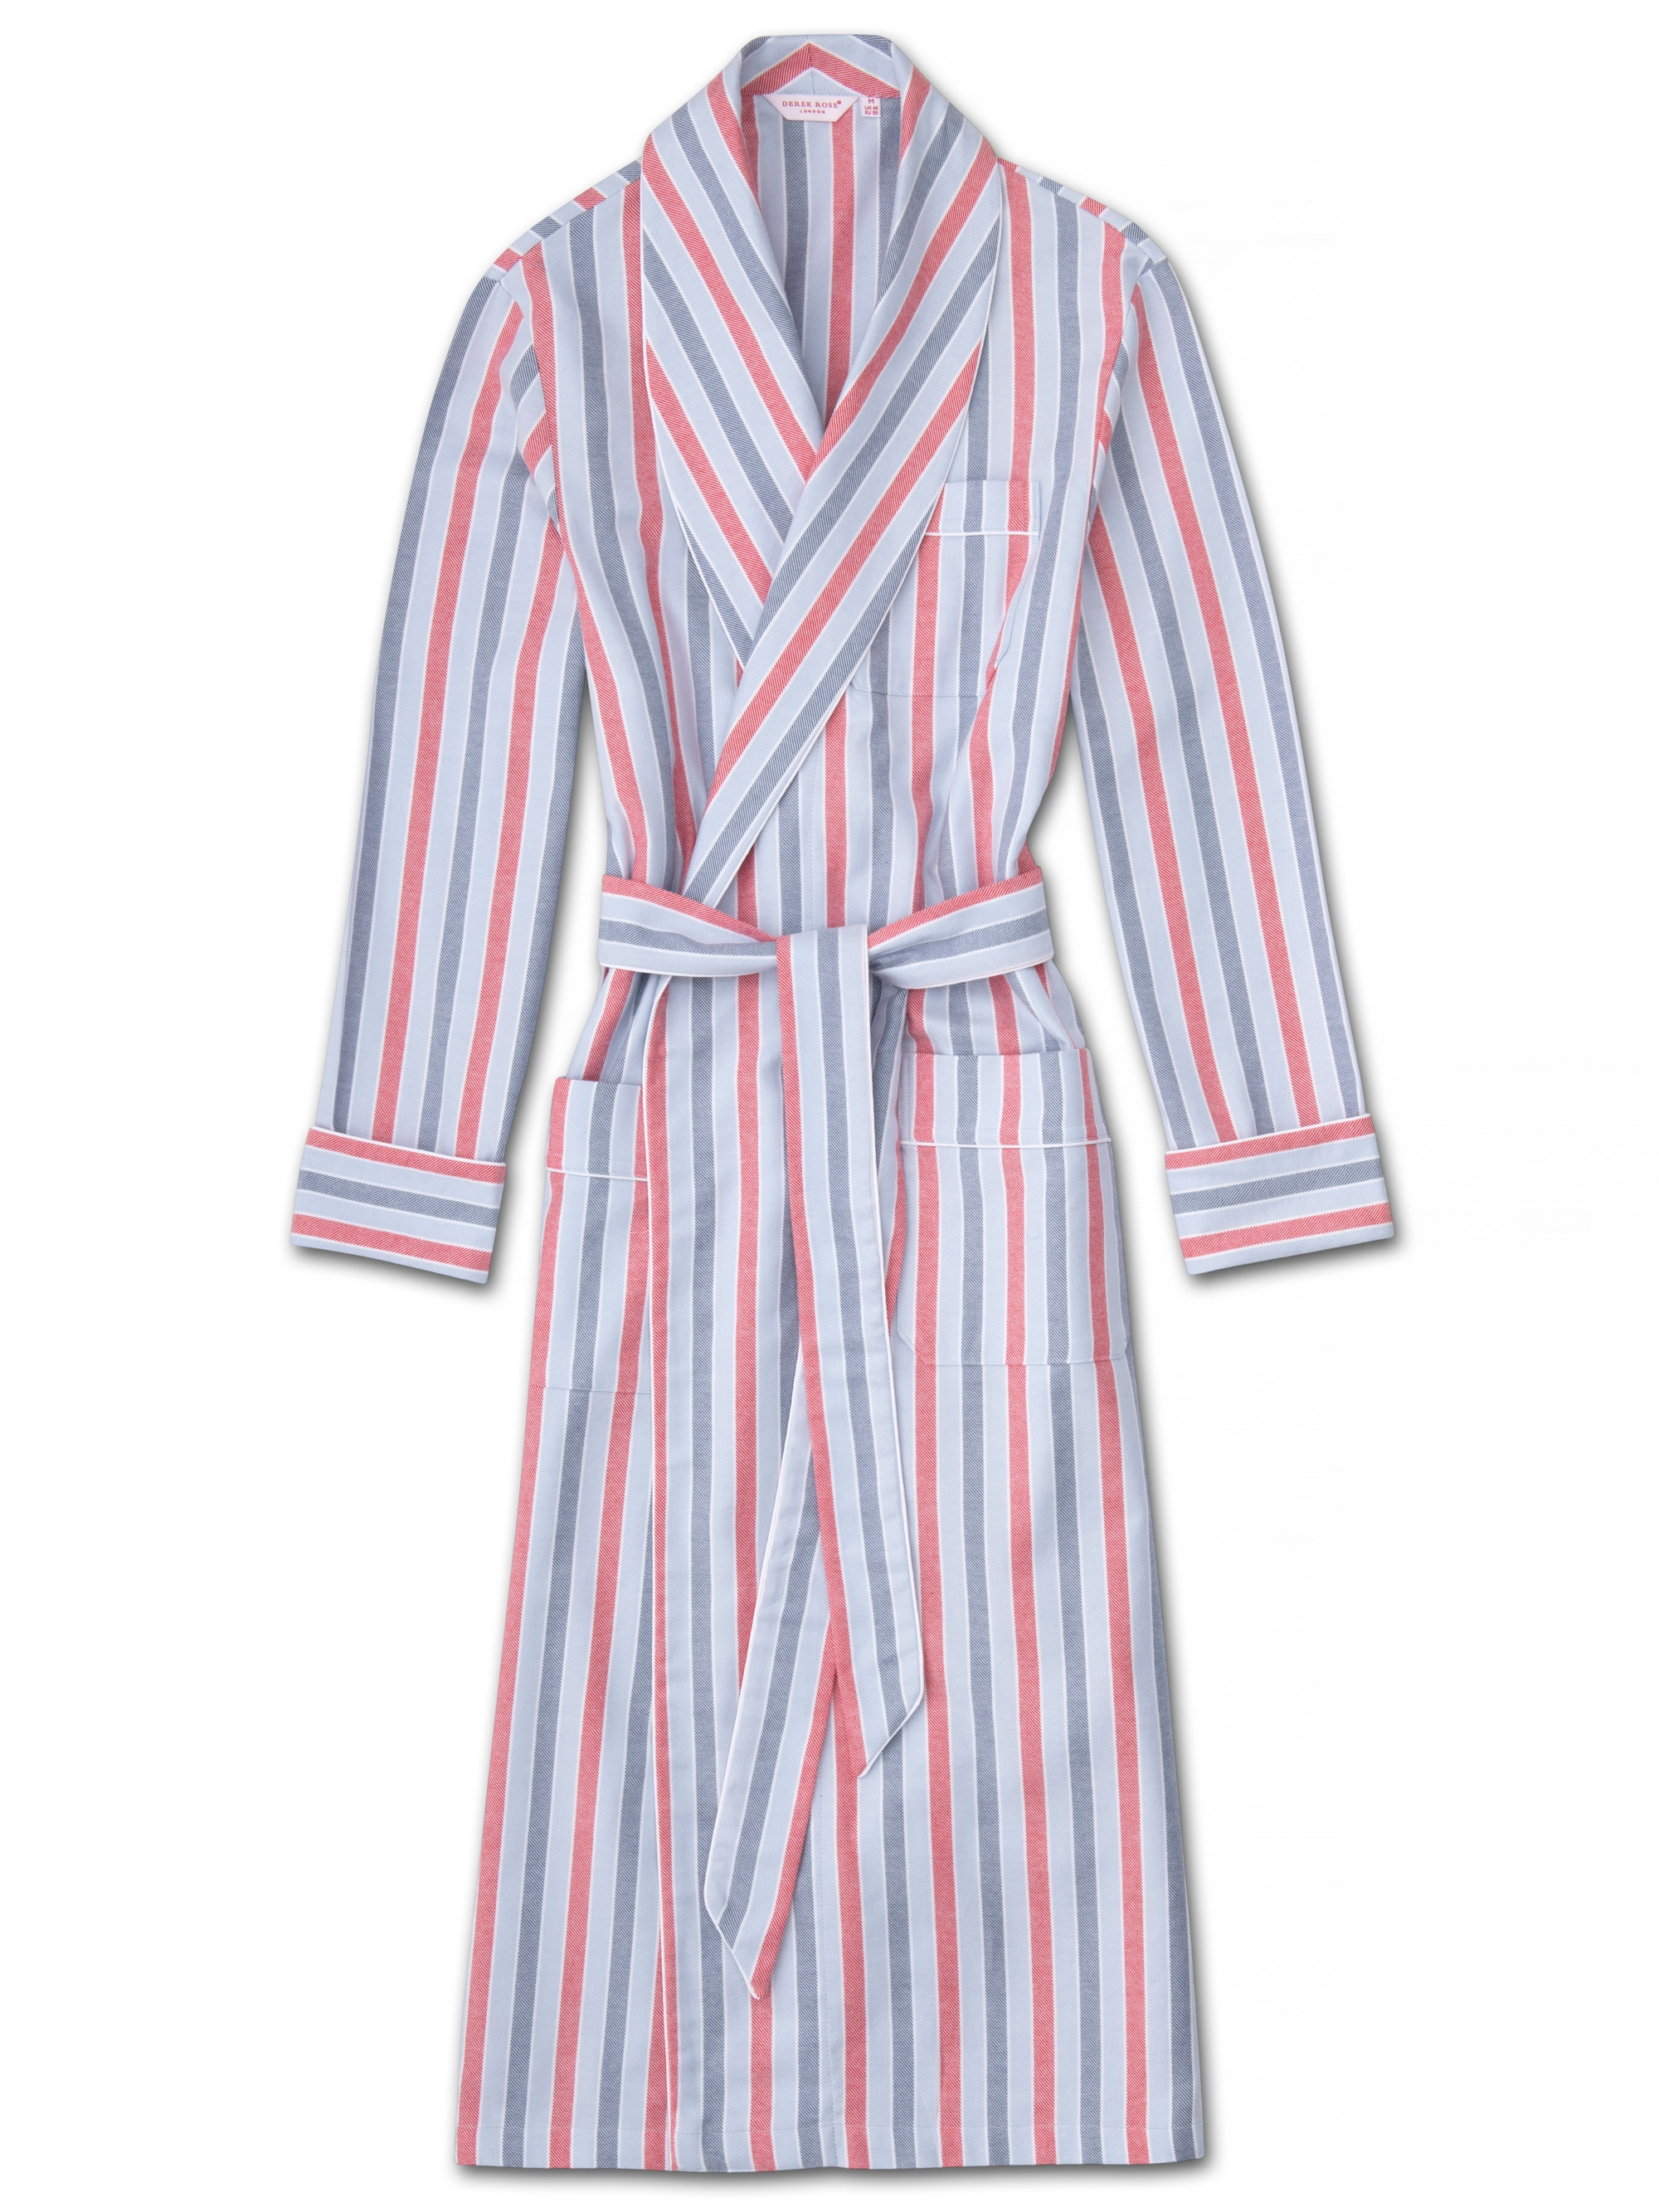 Derek Rose DEREK ROSE MEN'S PIPED DRESSING GOWN KELBURN 11 BRUSHED COTTON STRIPE BLUE